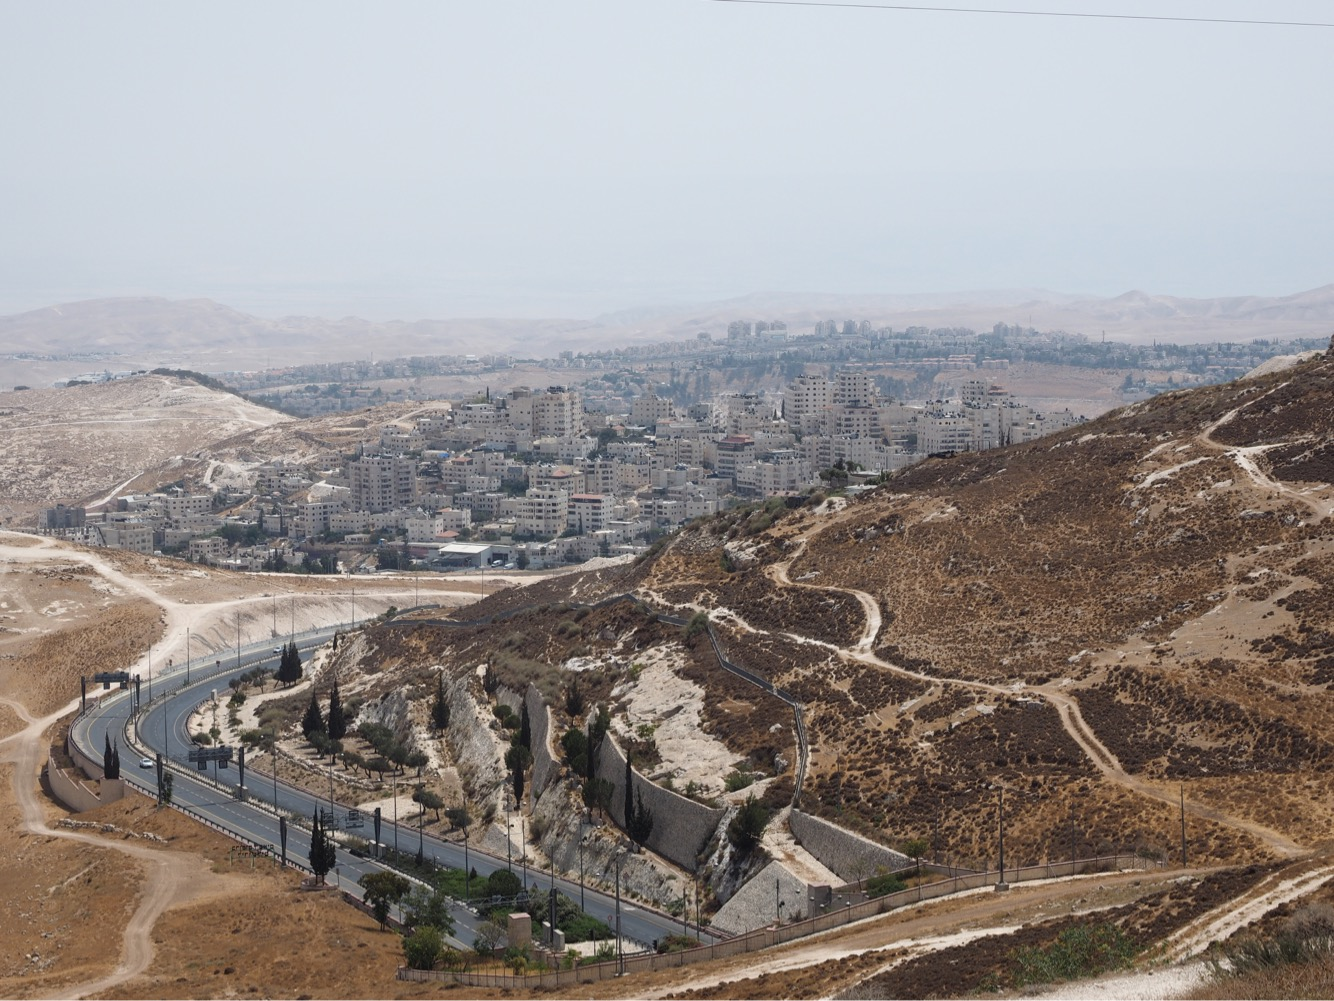 A view of Bethlehem from Palestinian territory.